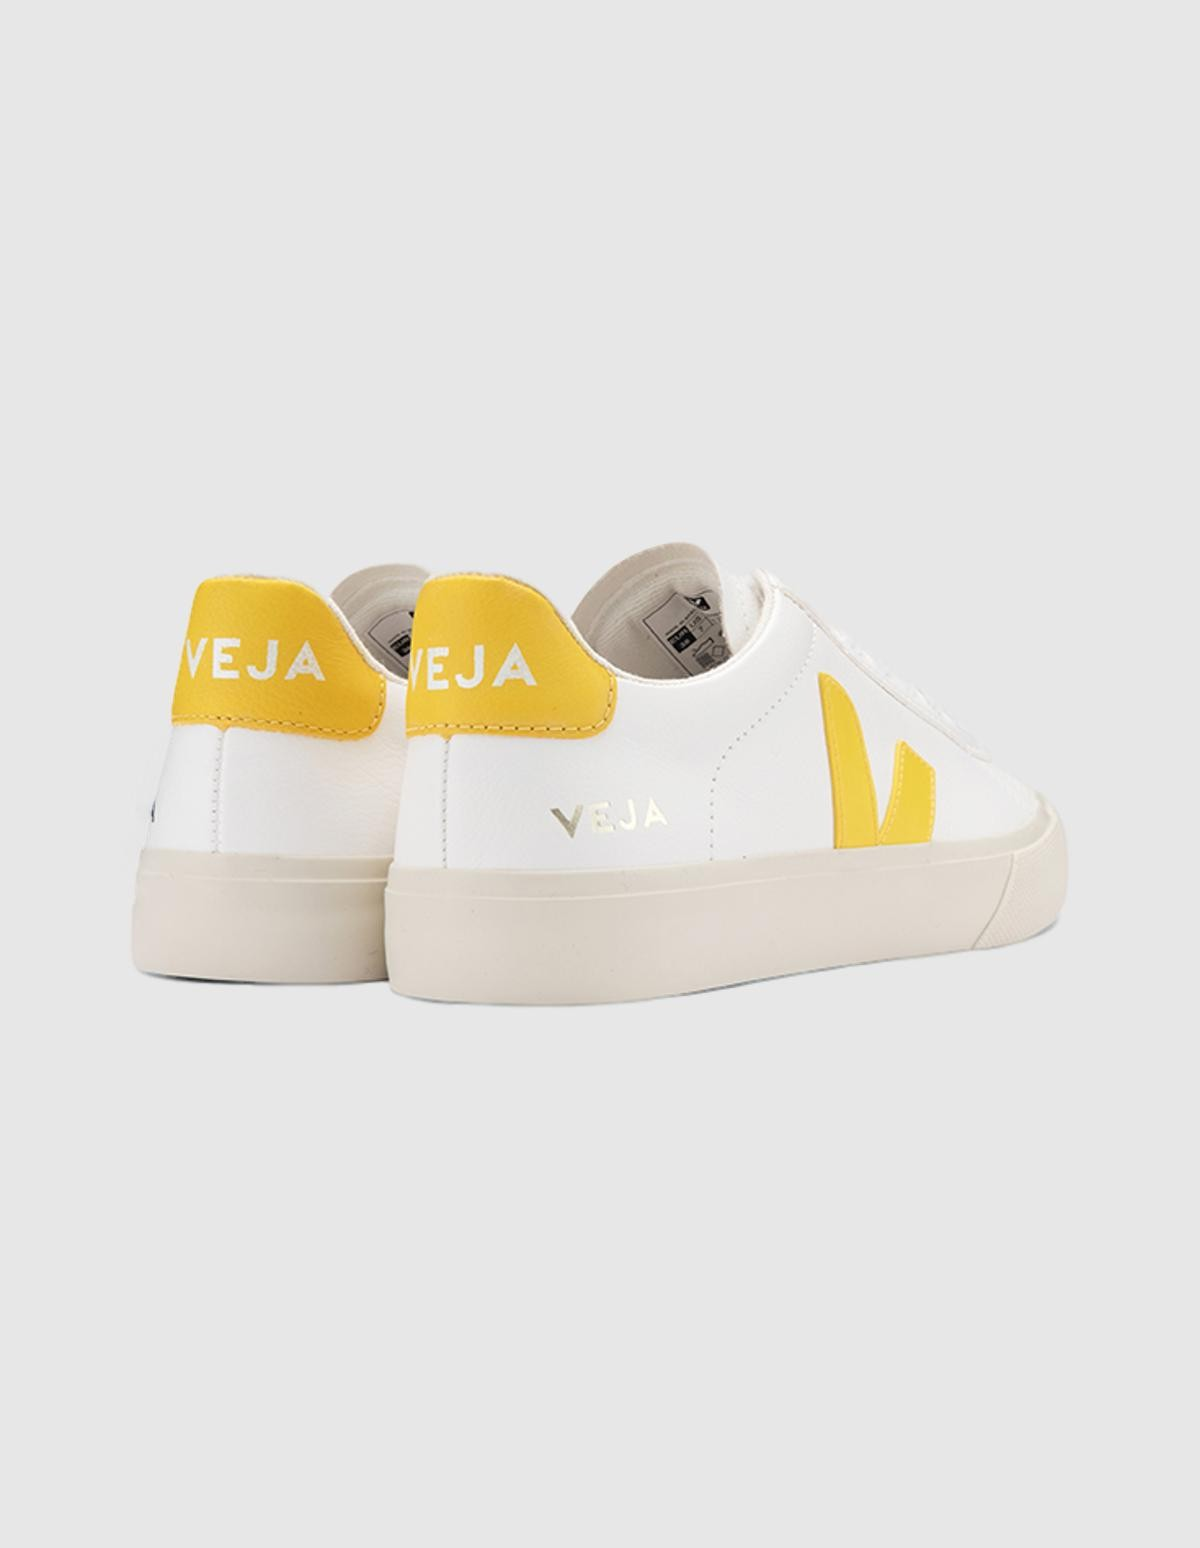 Veja Campo Chromefree Leather in Extra White Tonic